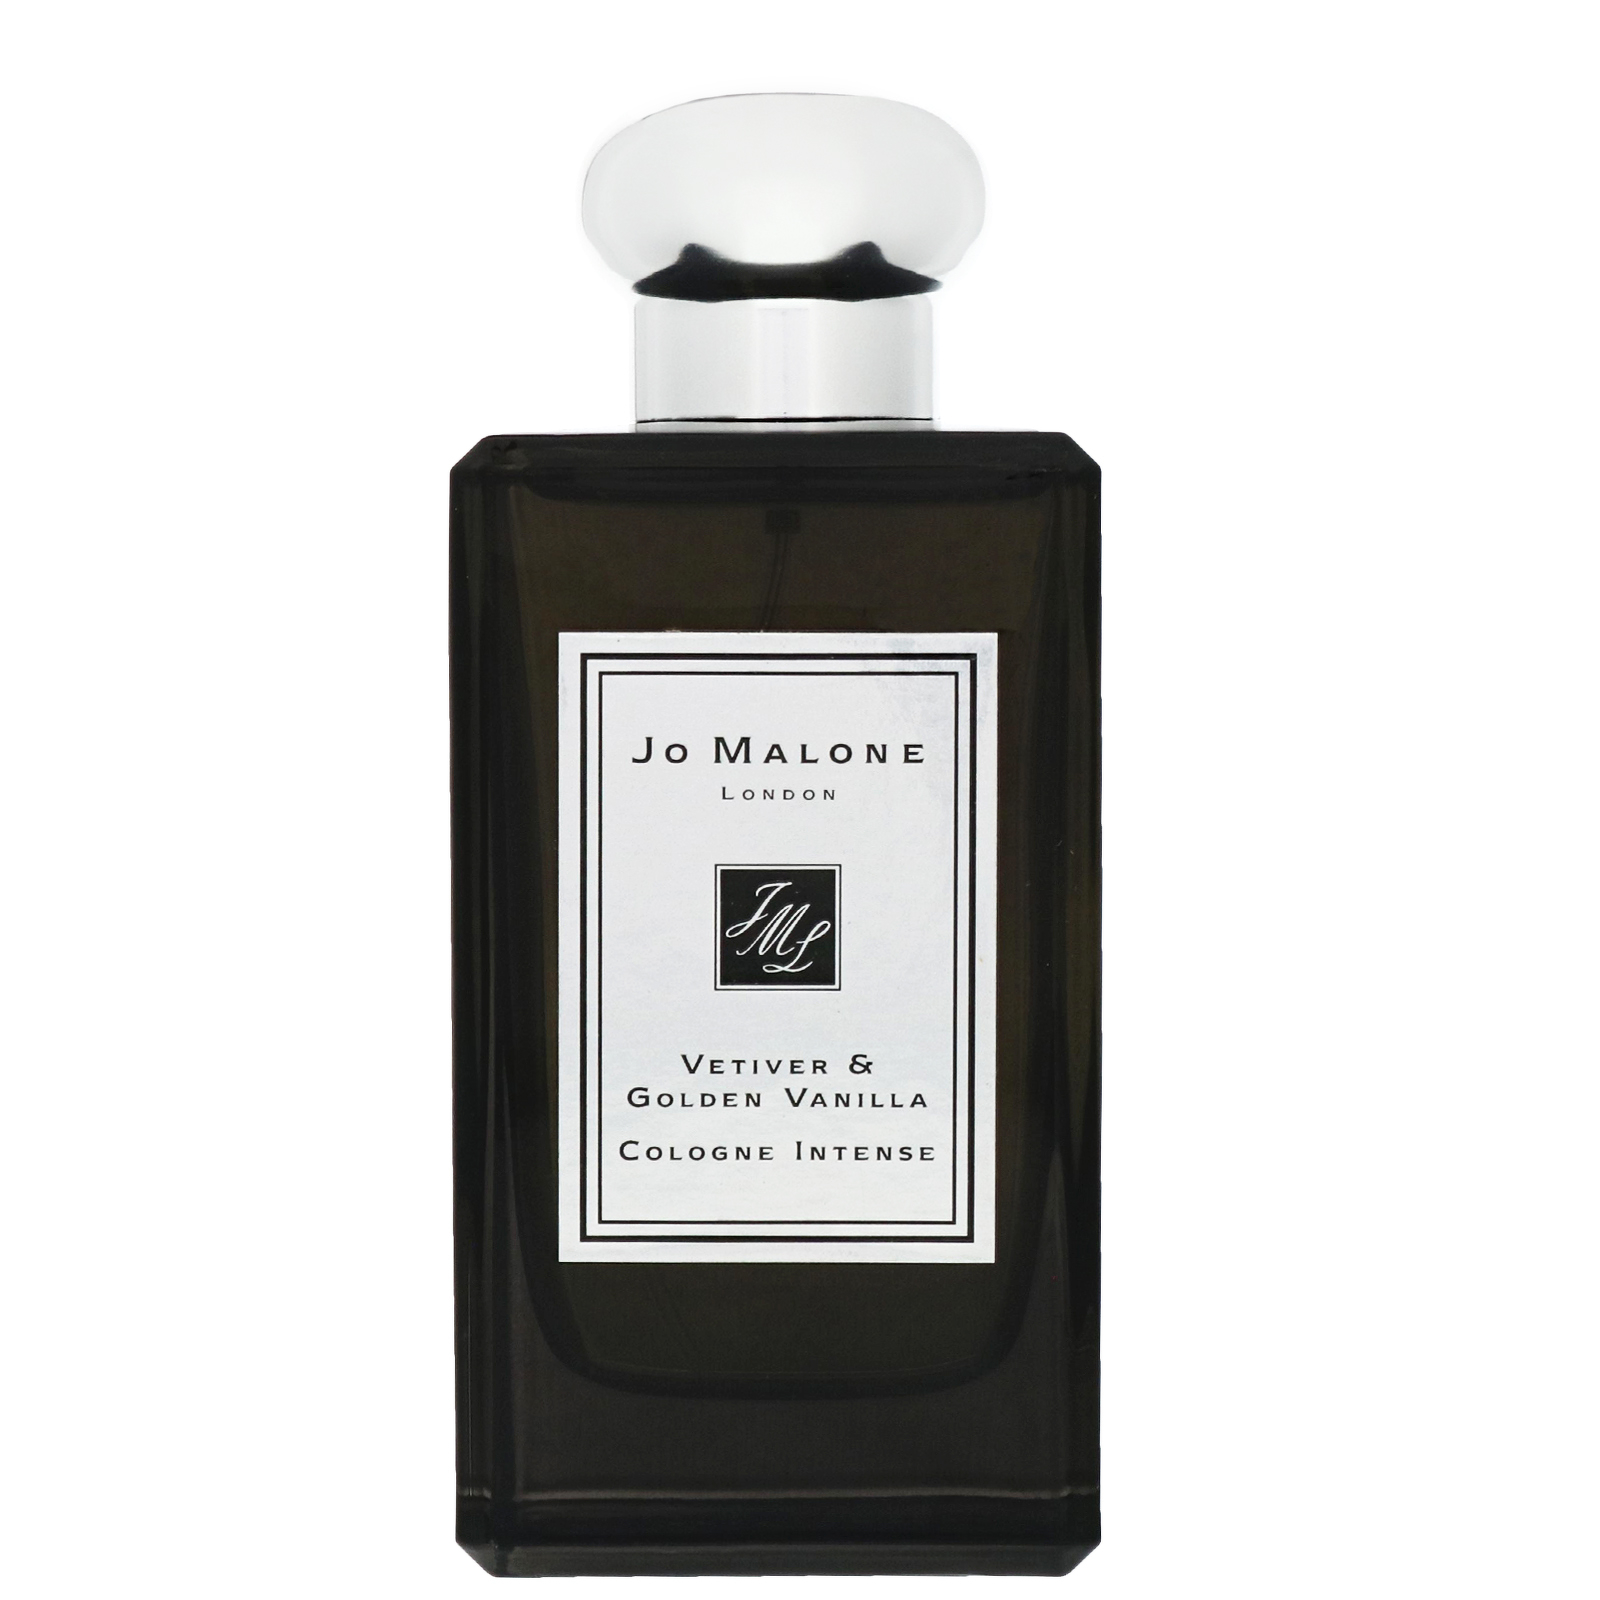 Jo Malone Vetiver & Golden Vanilla Eau de Cologne Intense Spray 100ml